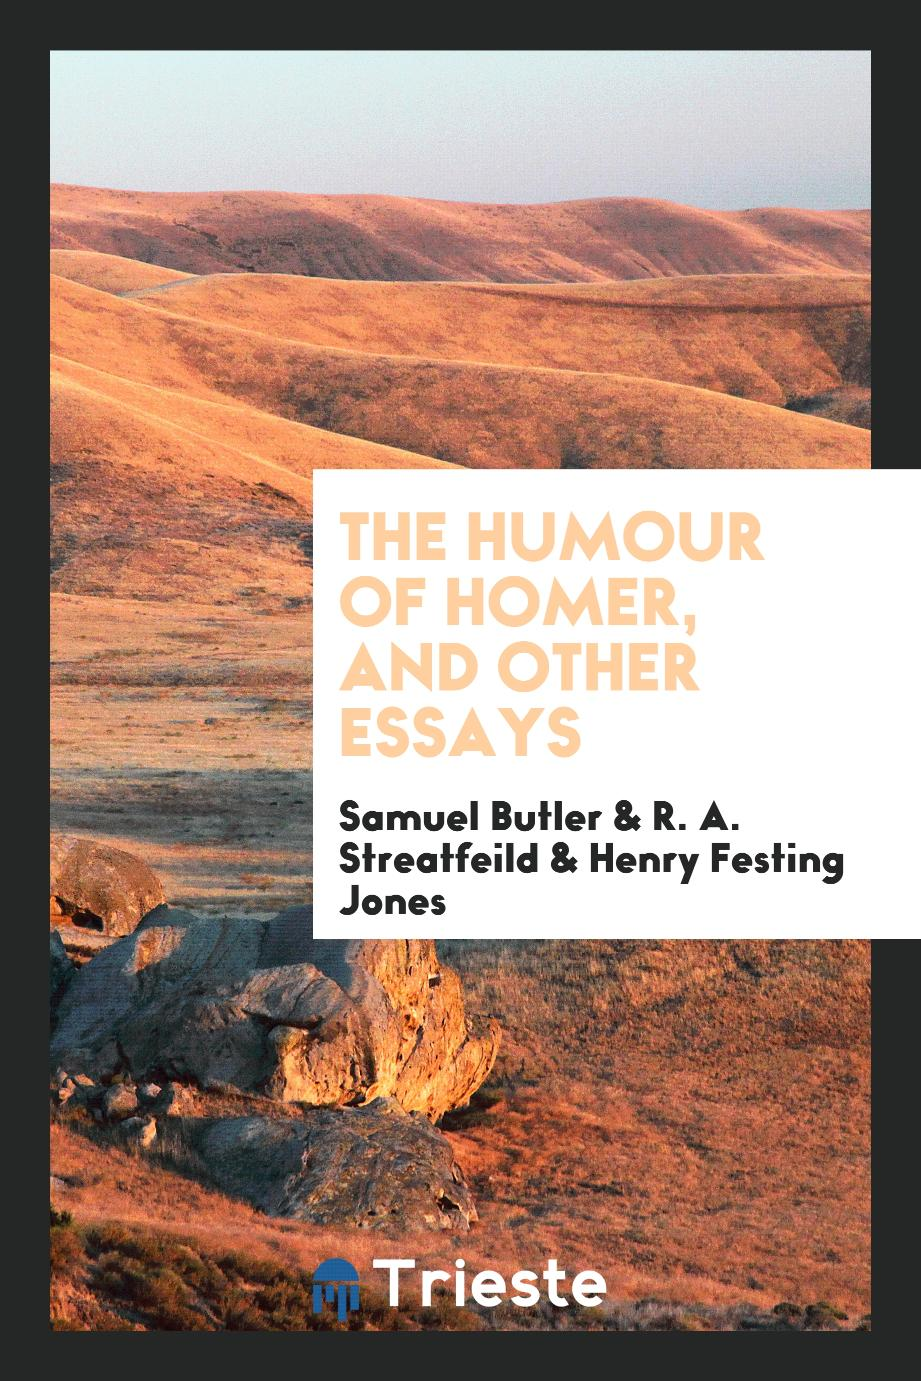 The Humour of Homer, and Other Essays